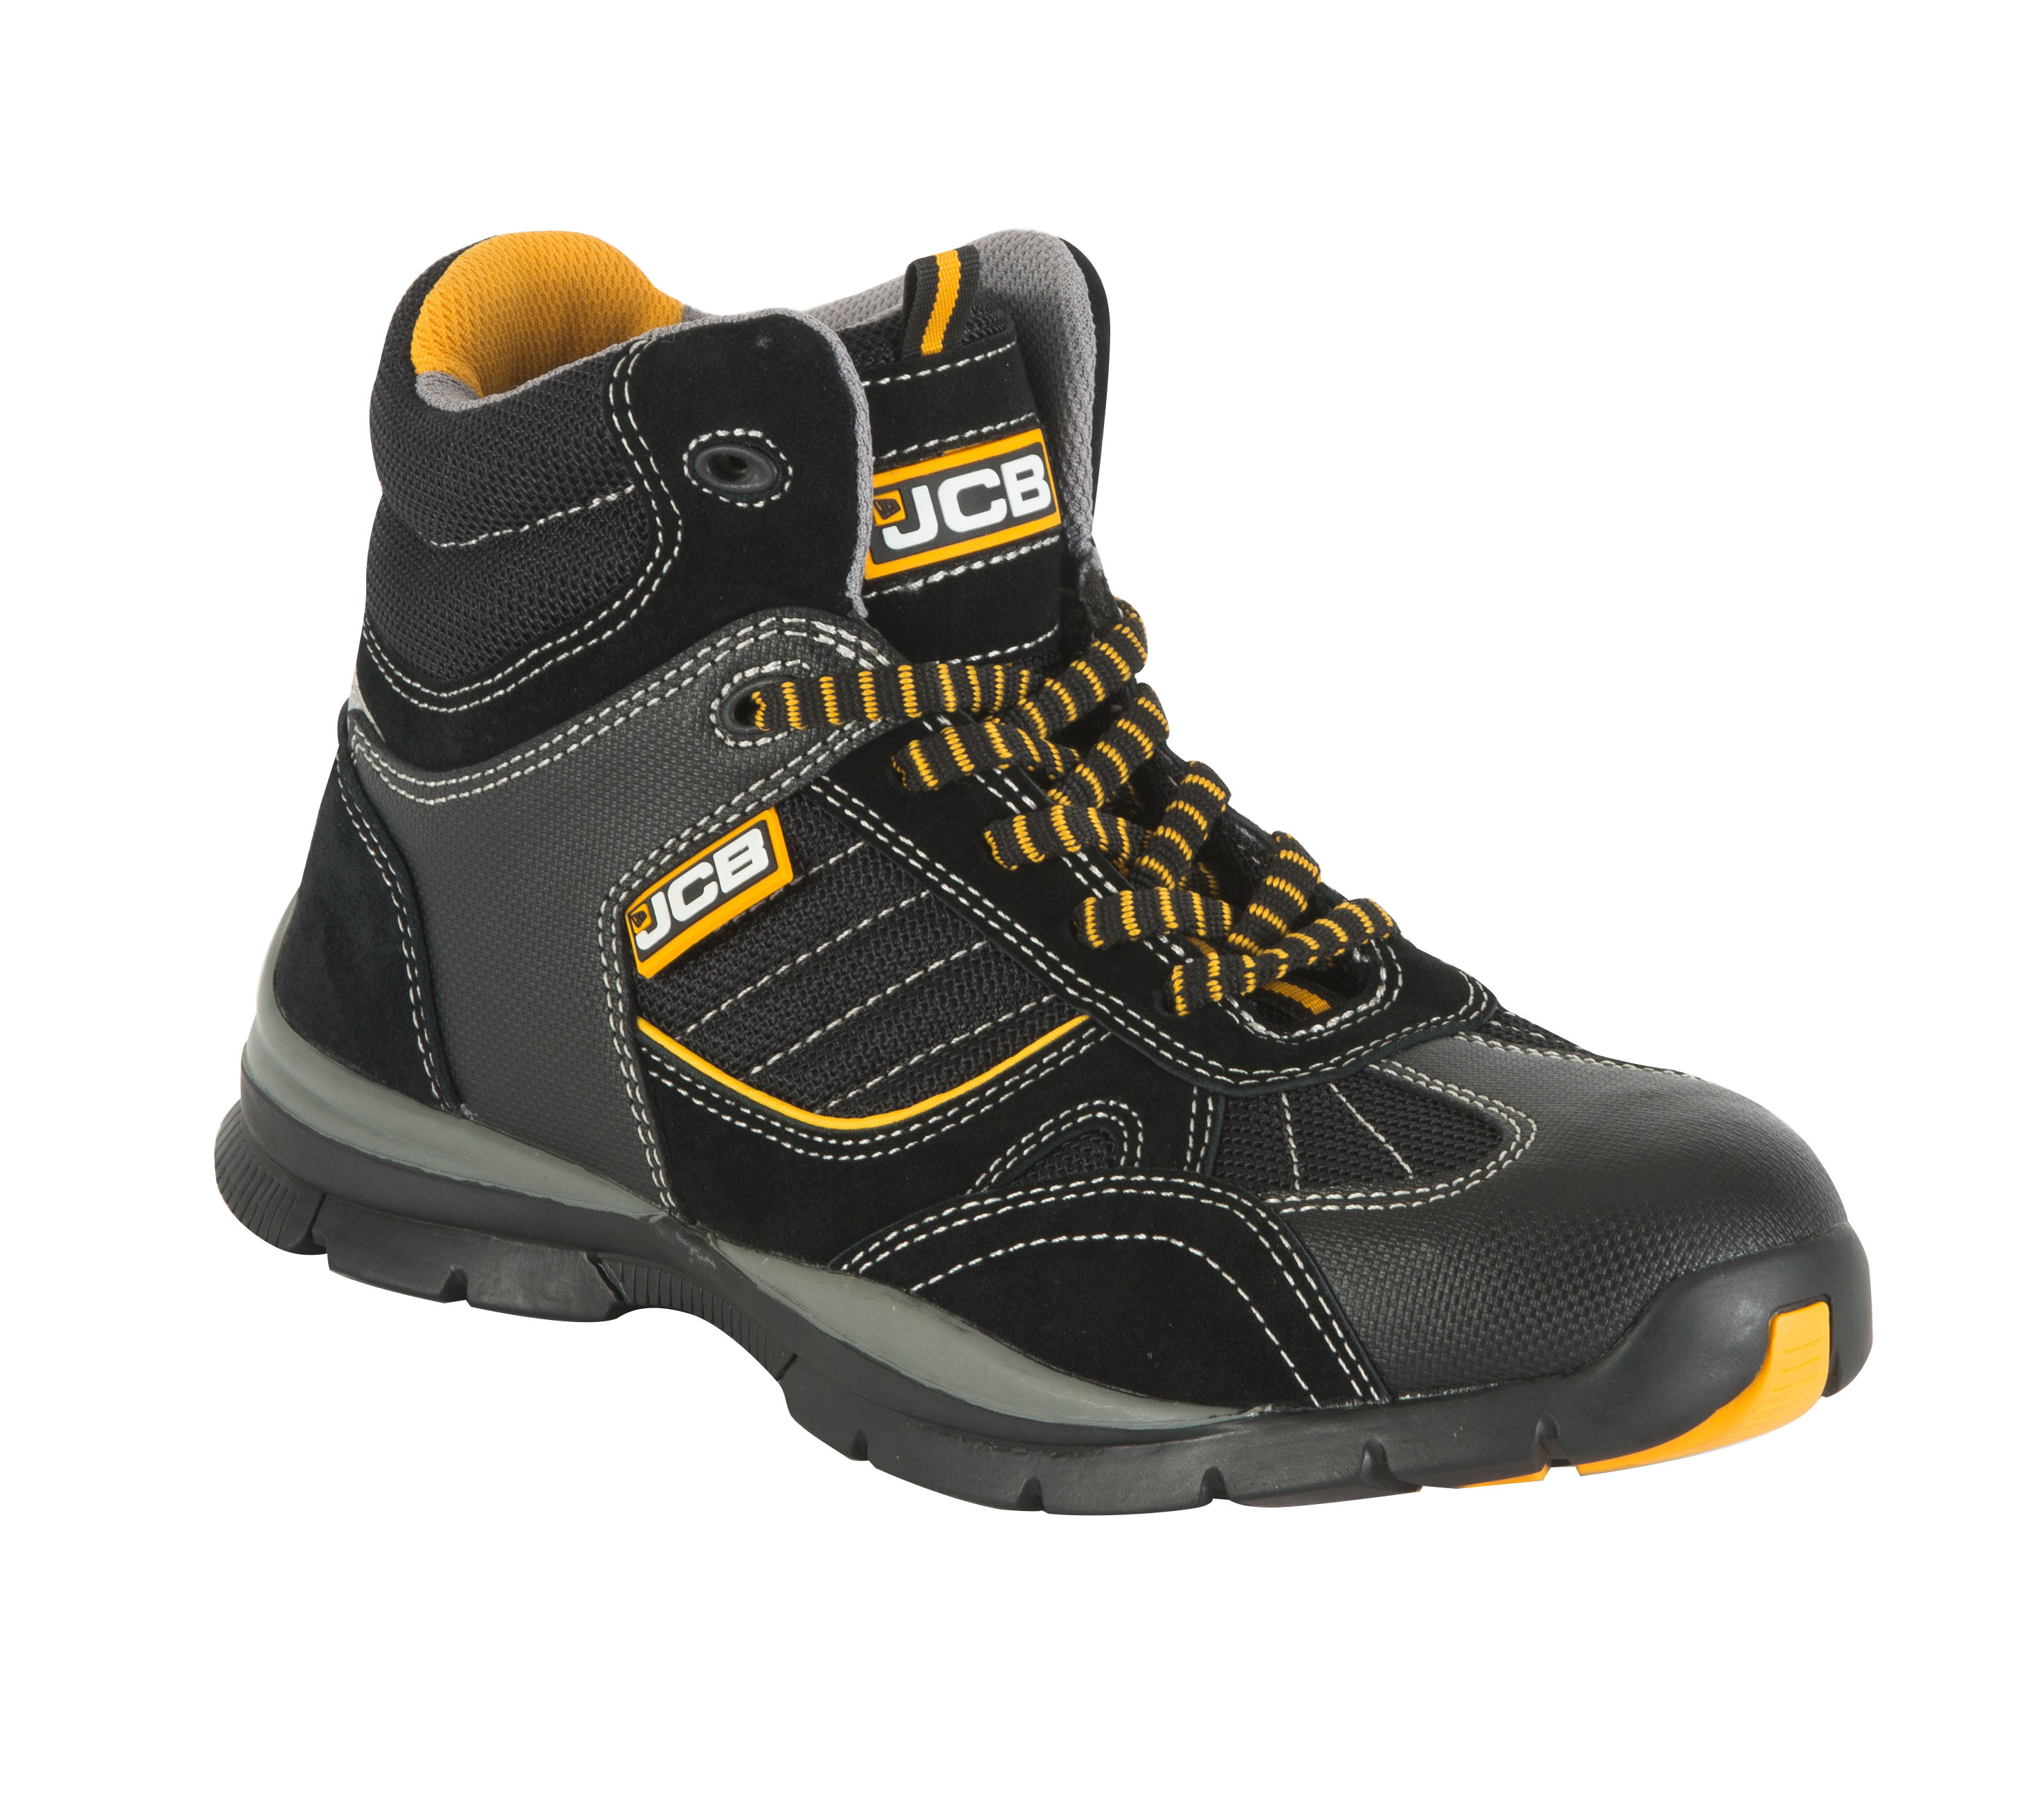 ROCK/B JCB ROCK BLACK HIKER